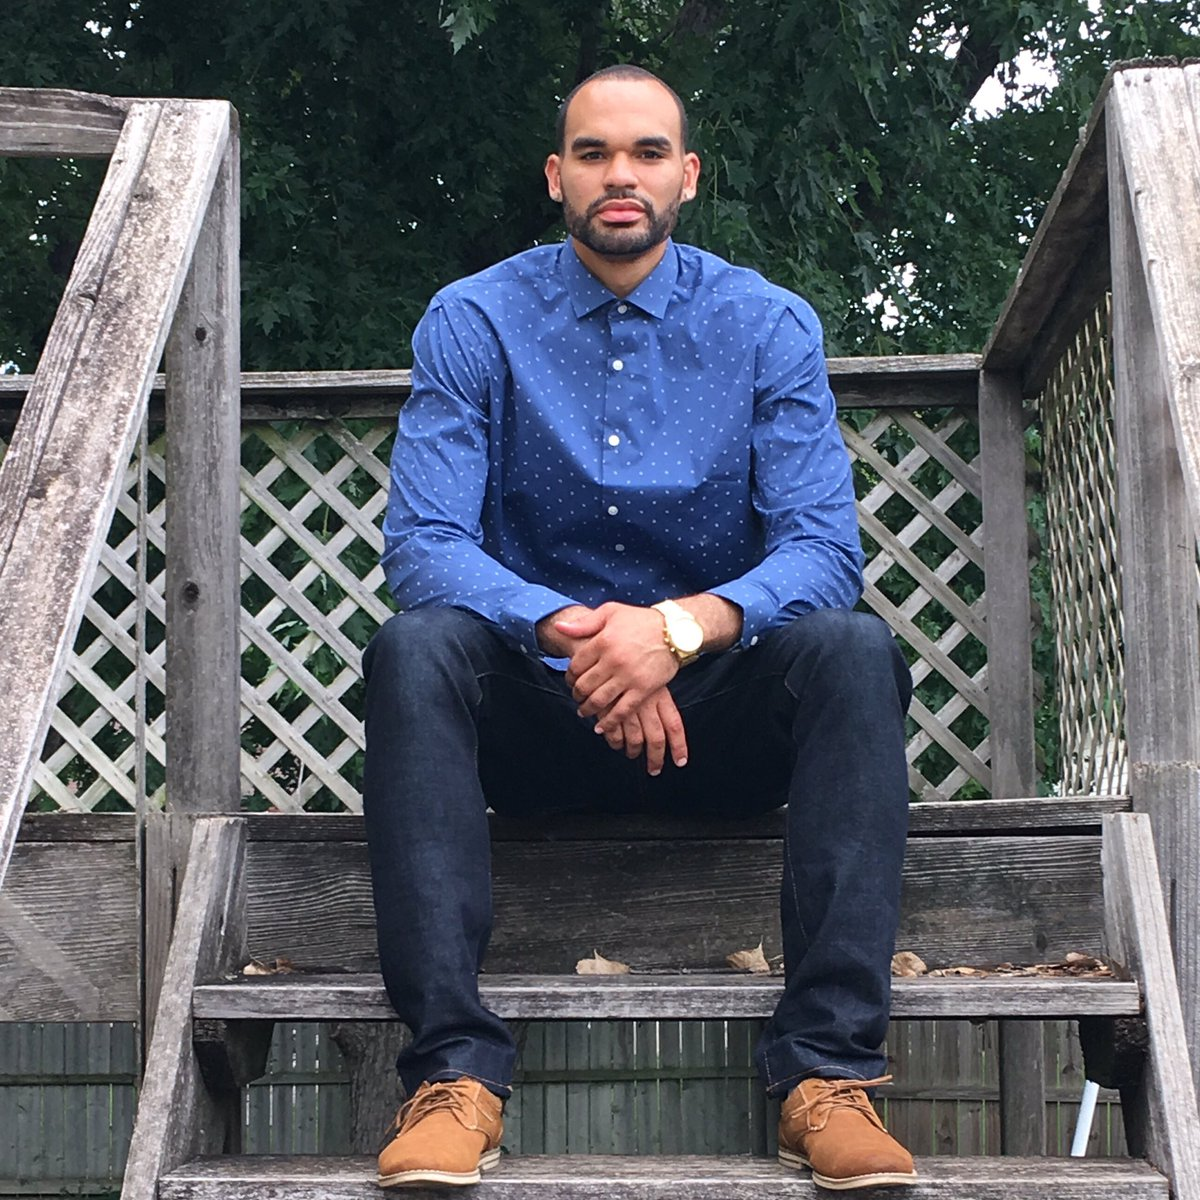 Basketball player Perry Ellis looking dapper in Perry Ellis. #veryperry #namesake https://t.co/GzRGrW993A